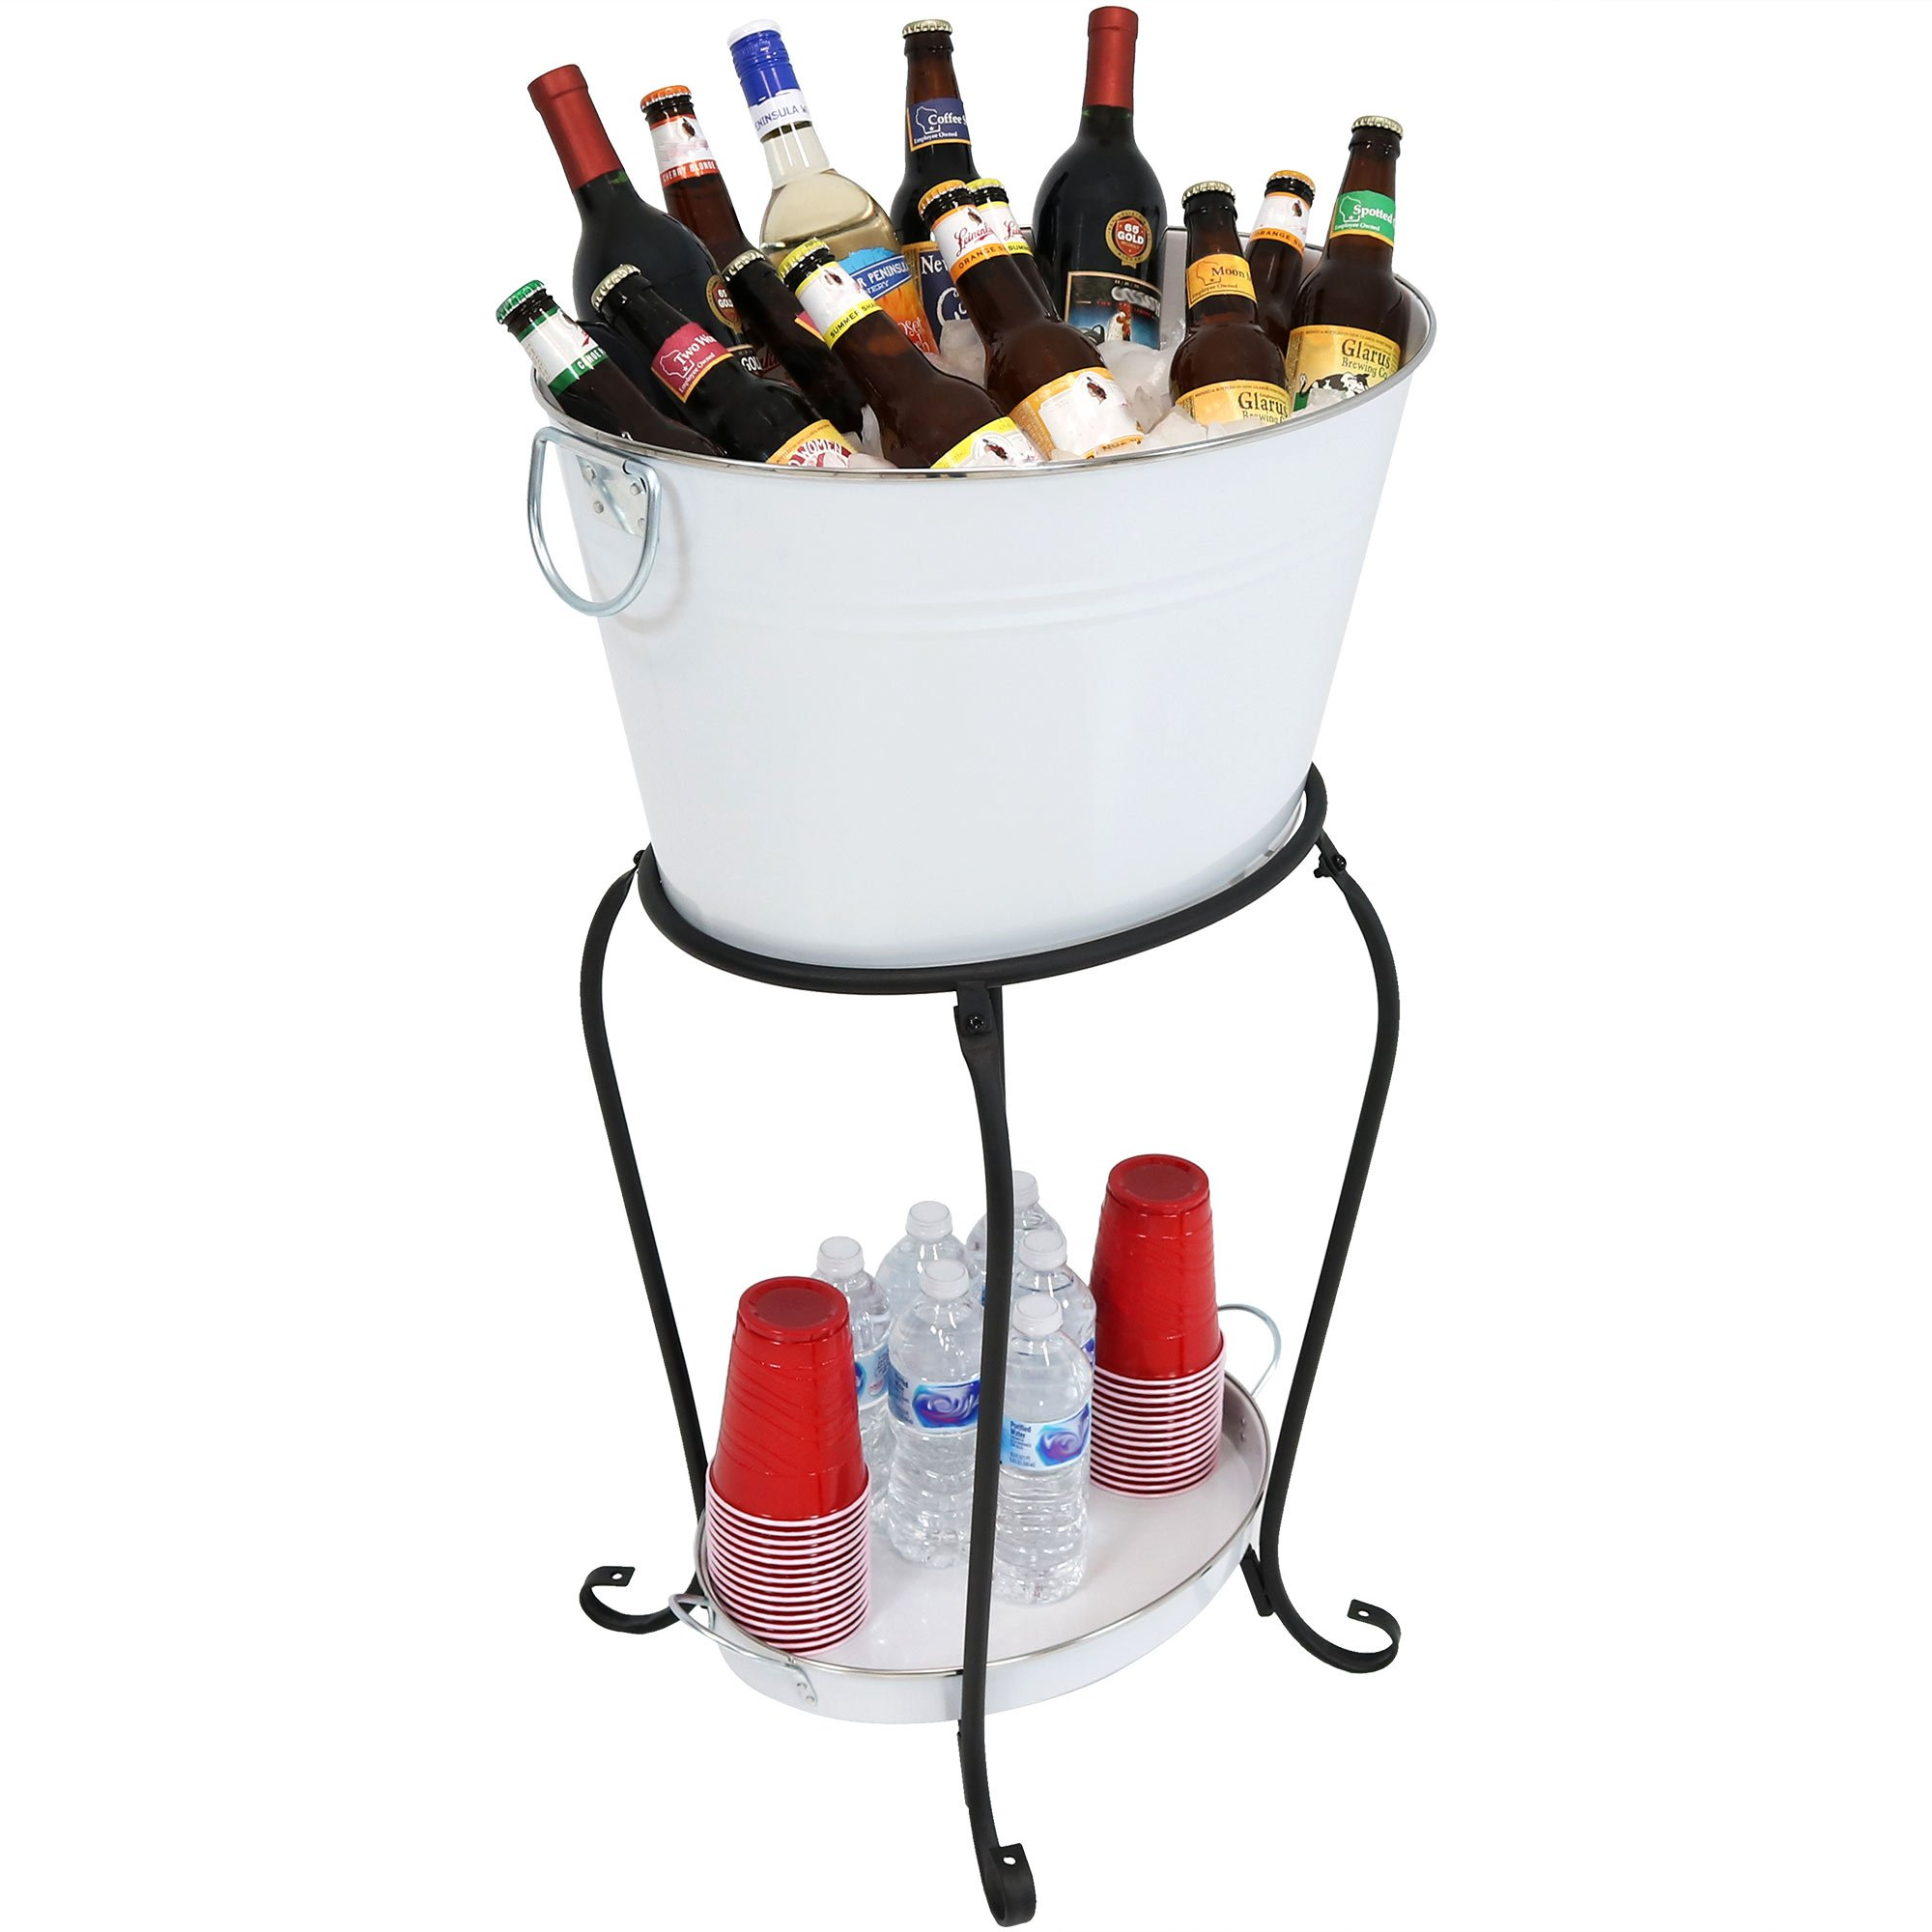 Sunnydaze Large Ice Bucket Beverage Holder with Stand and Tray for Parties, White Finish, Holds Beer, Wine, Champagne and More by Sunnydaze Decor